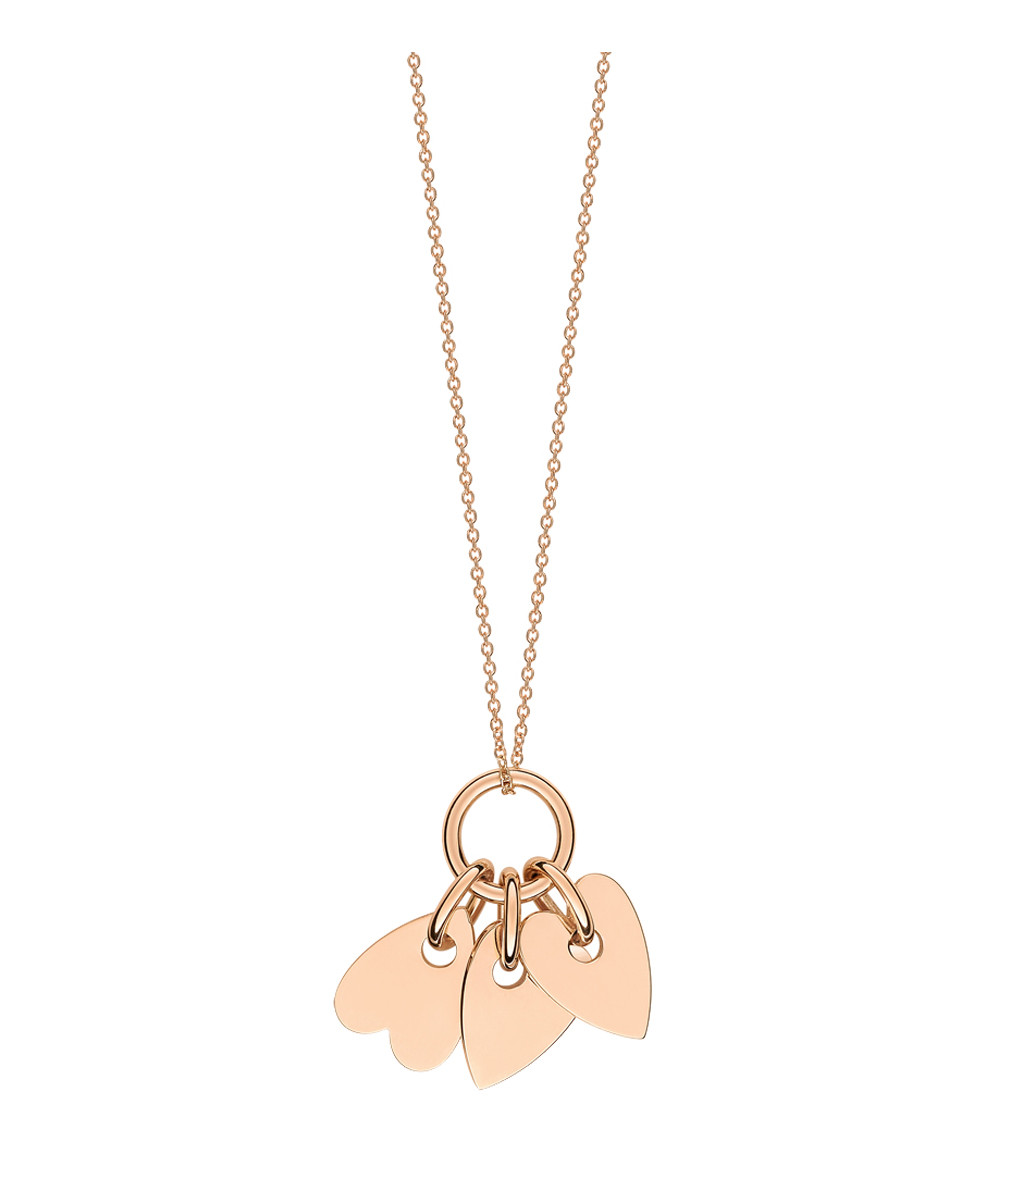 GINETTE_NY - Collier Angele 3 Mini Coeurs